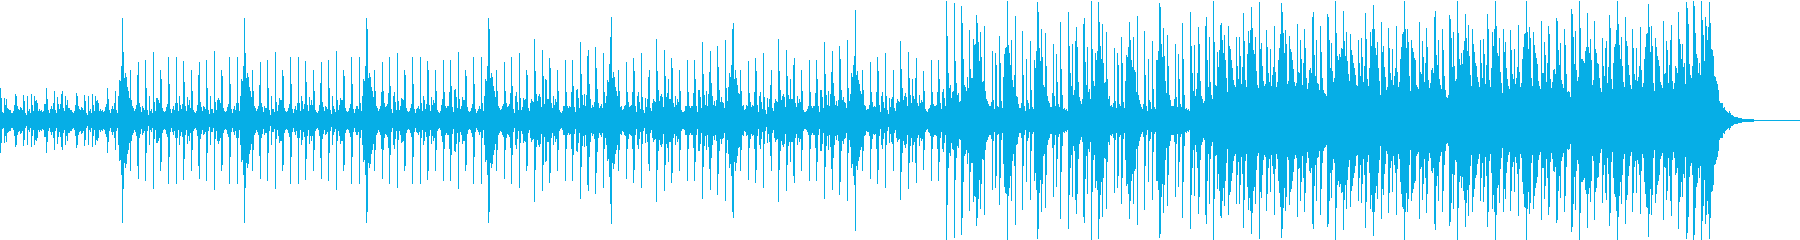 Brave section song with tension's reproduced waveform